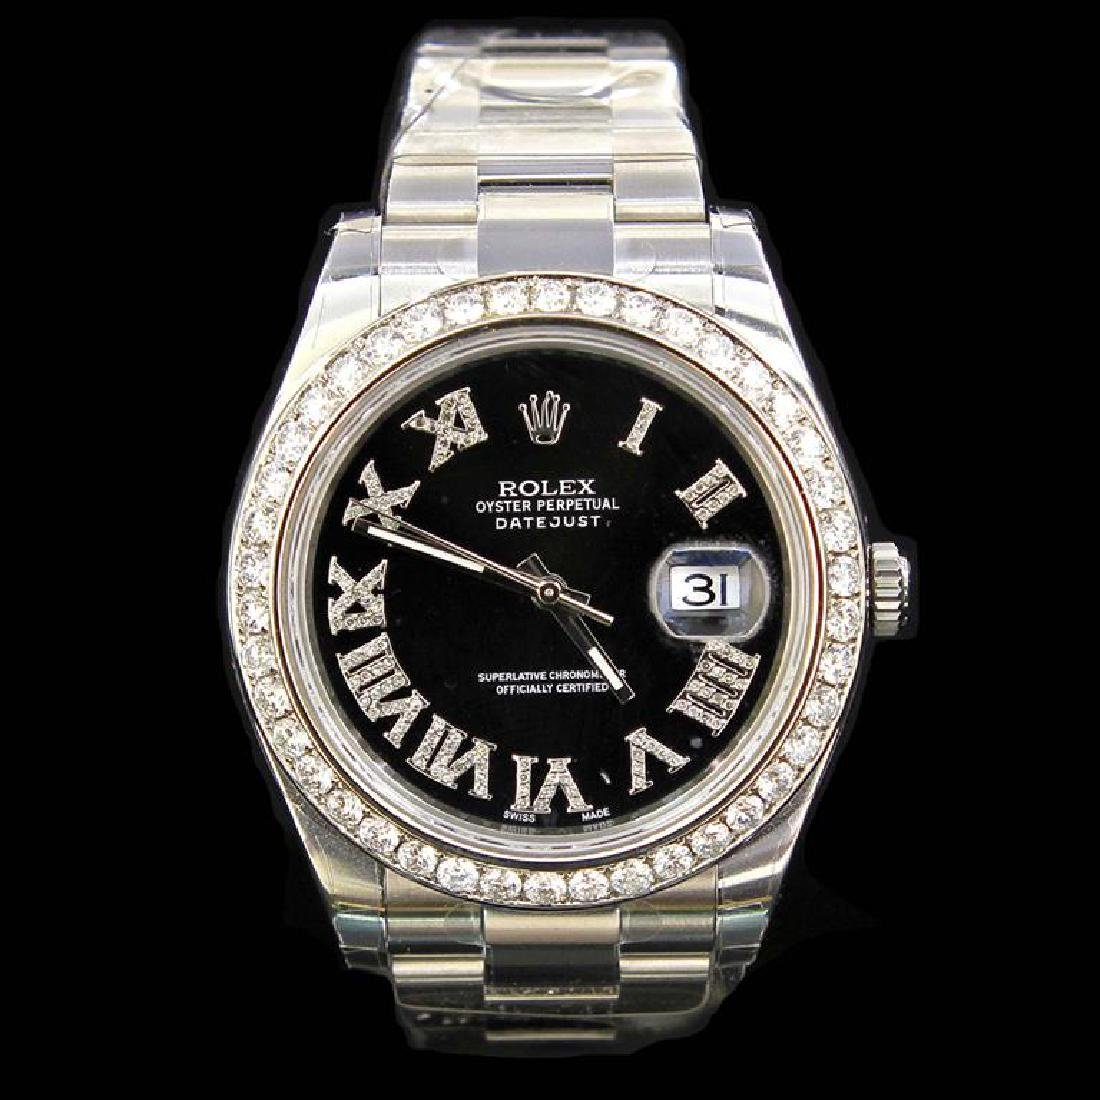 Rolex DateJust ll 41mm aprox. 4.5 cts. Diamond Bezel